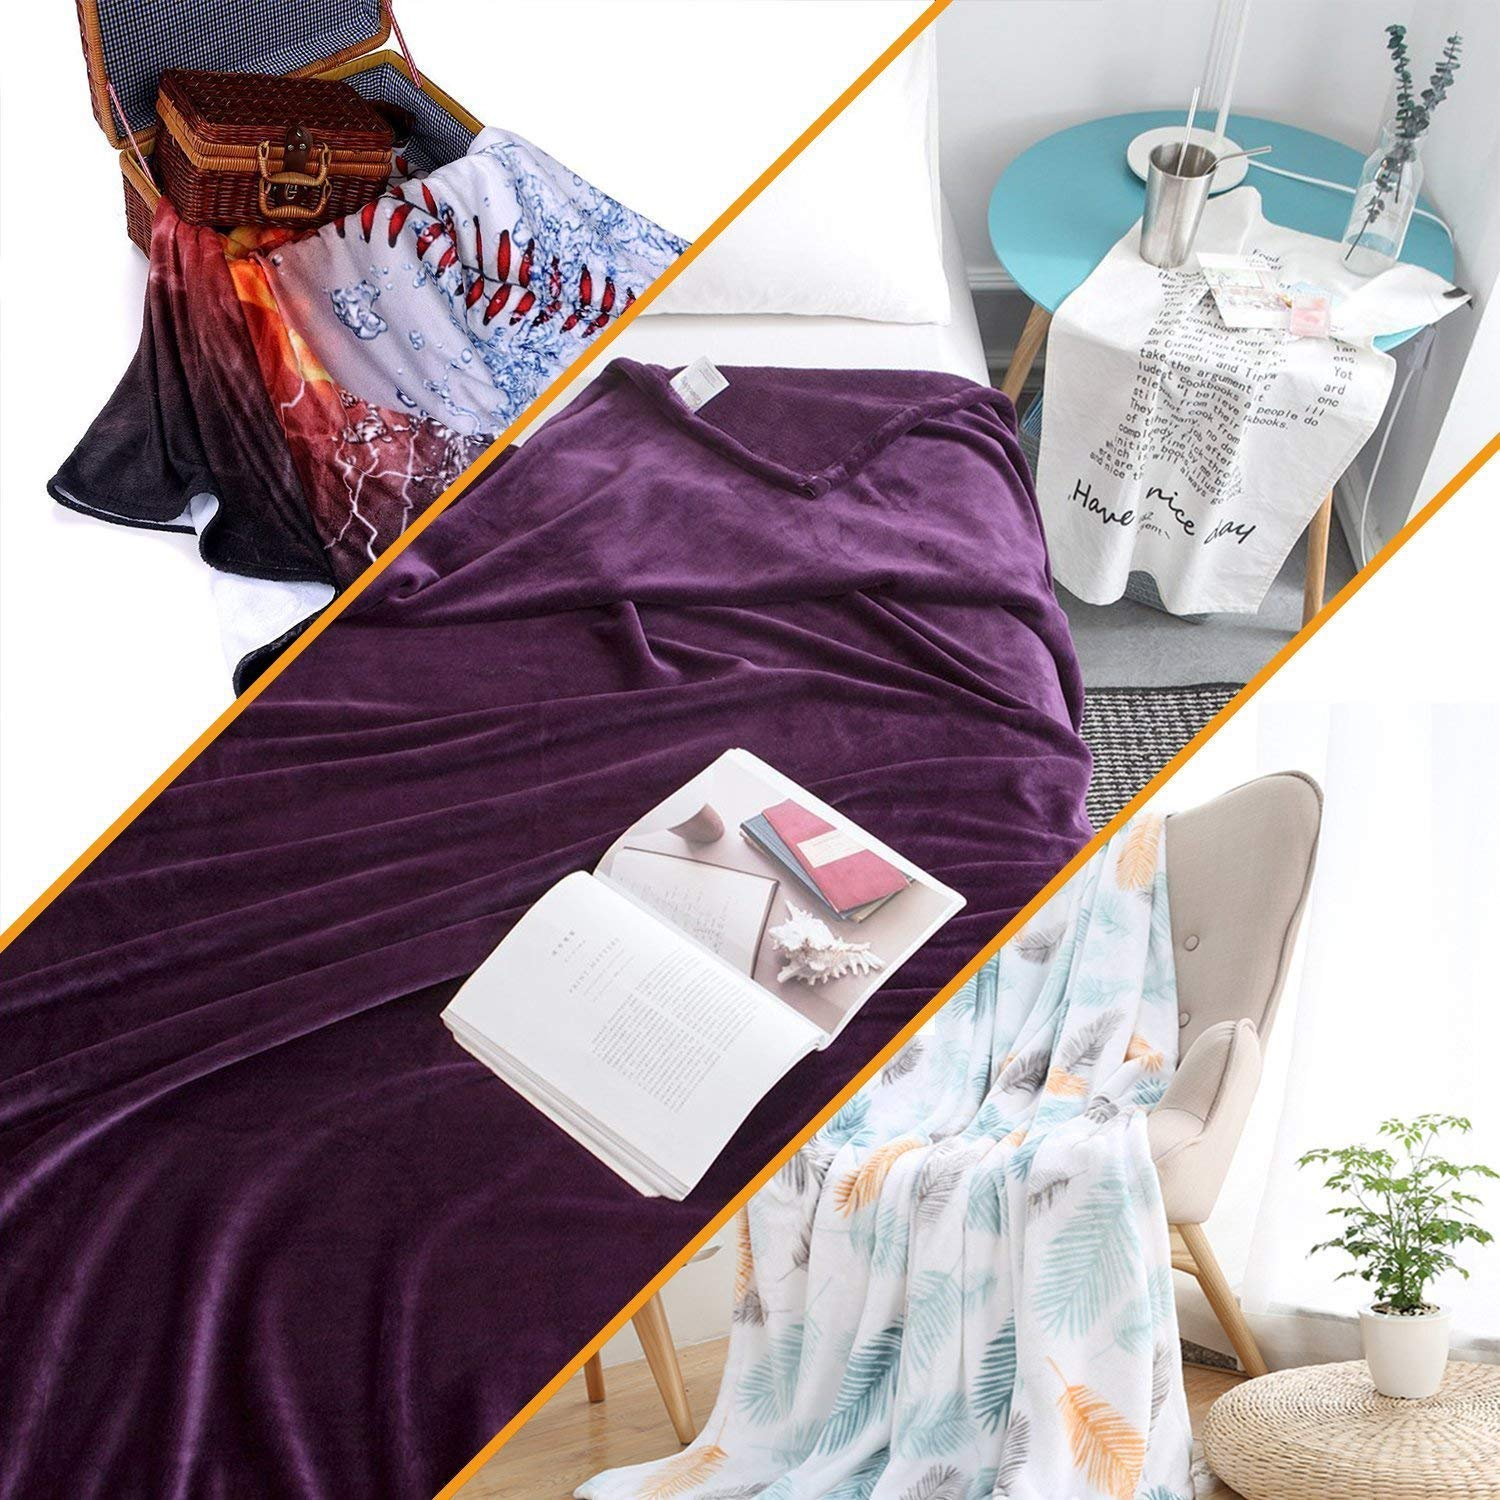 homehot Blanket Storage Bags with Zippers Abstract,Vintage Wavy Lines 80x60,Blankets for Baby